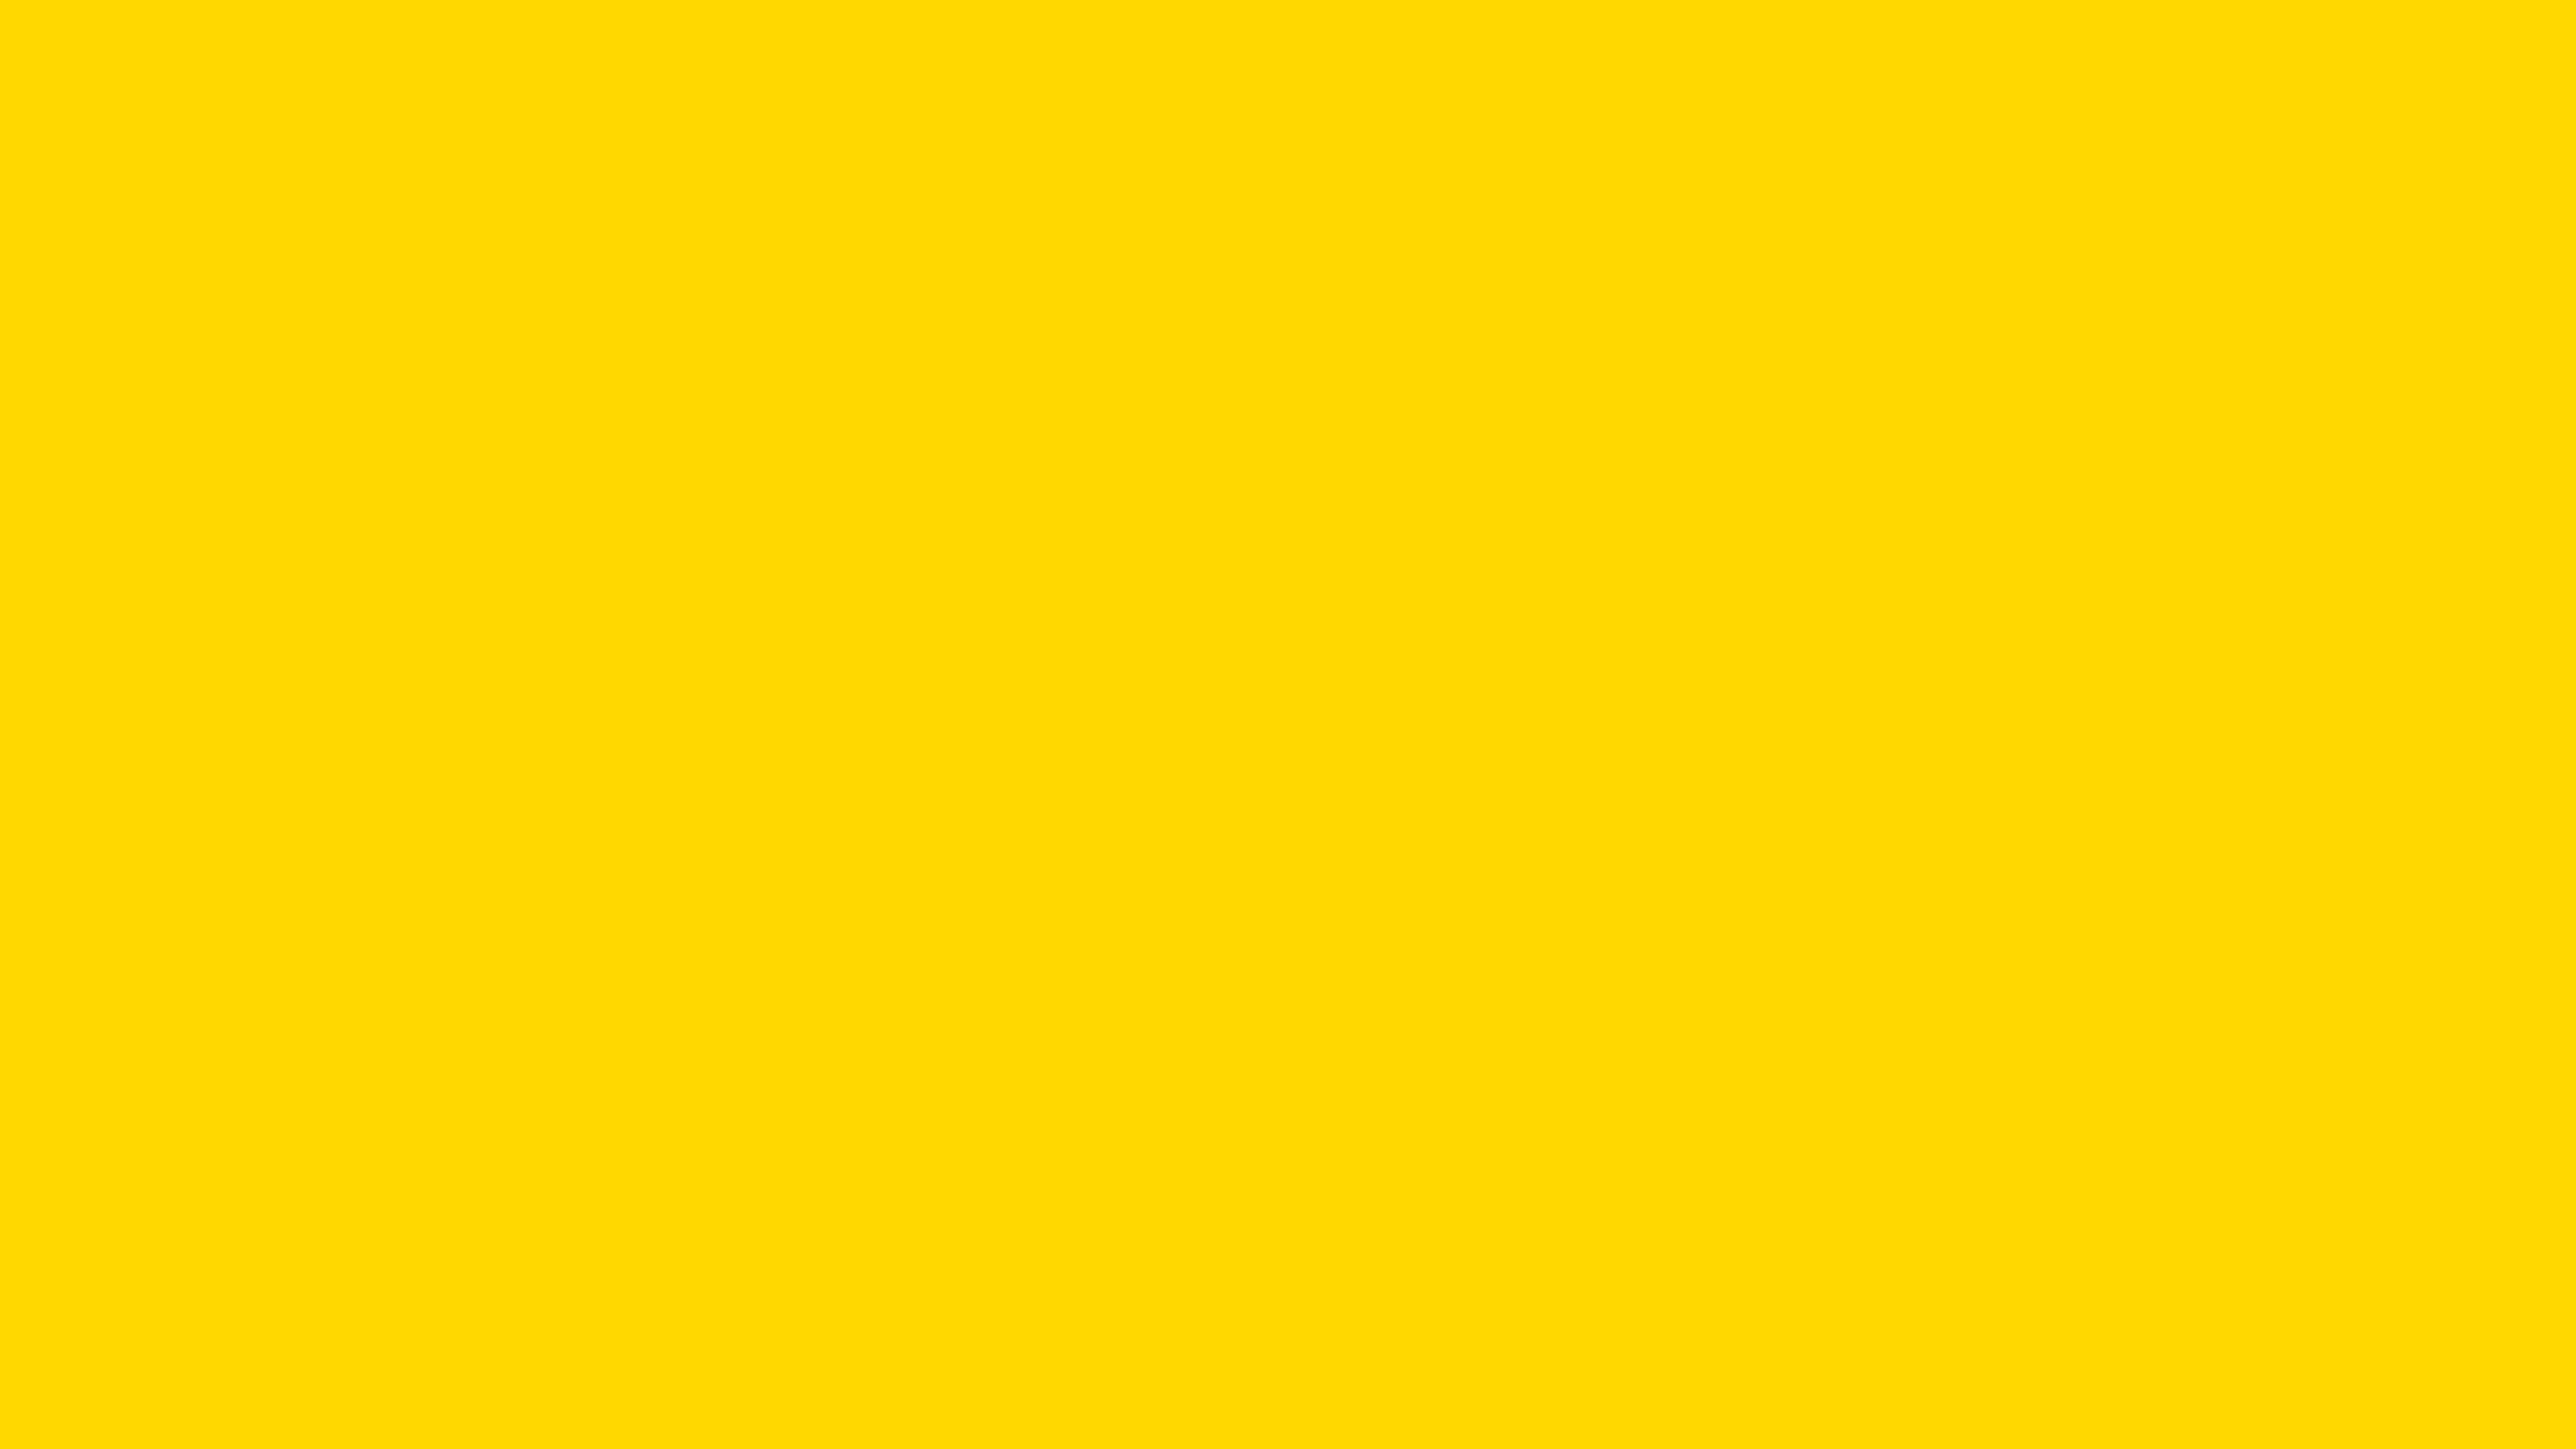 7680x4320 School Bus Yellow Solid Color Background